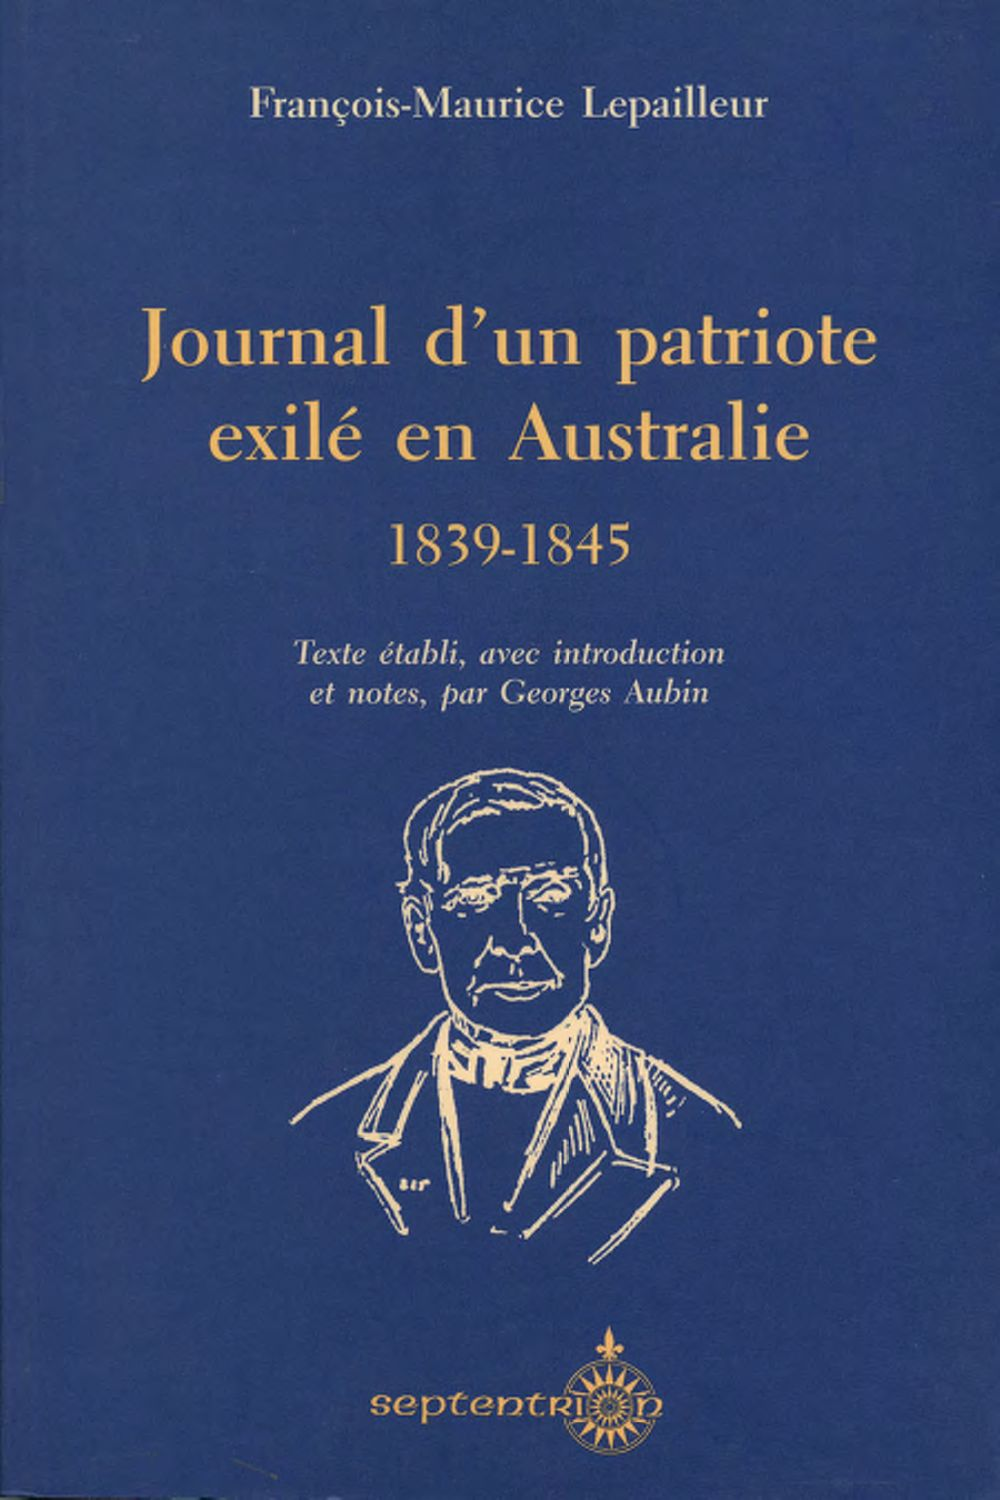 Journal d'un patriote exilé en Australie, 1839-1845